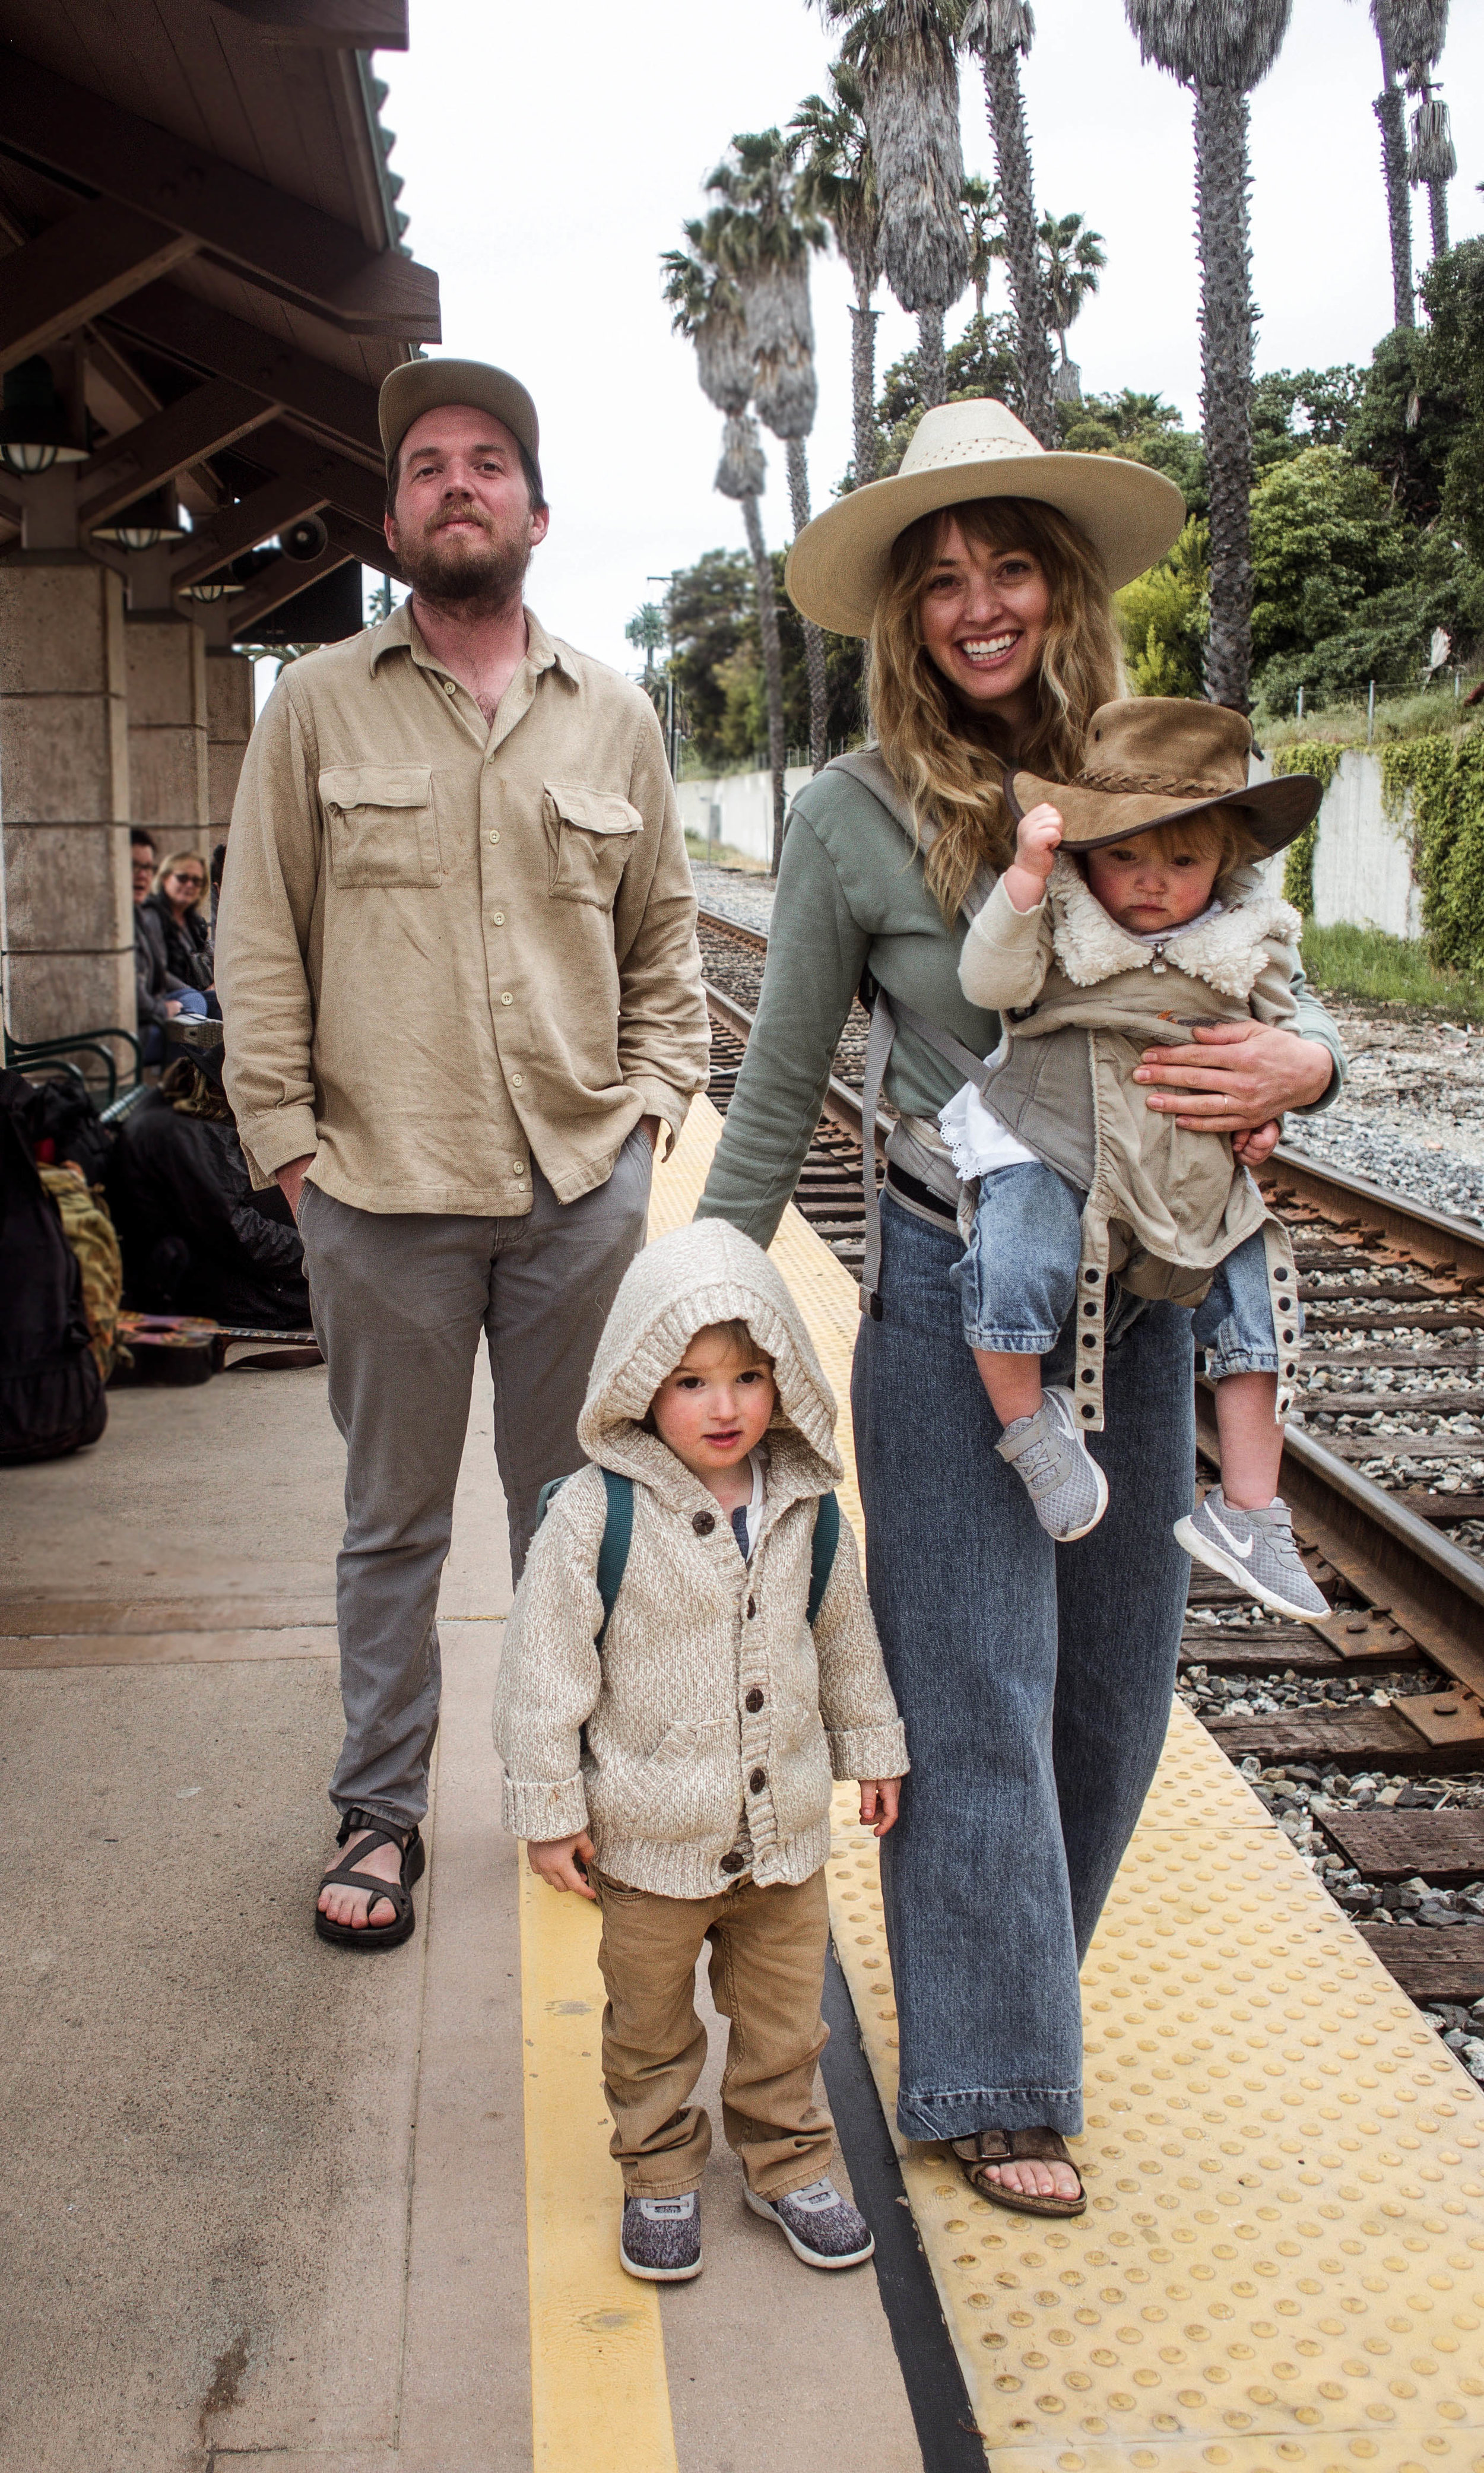 family at the Ventura train station